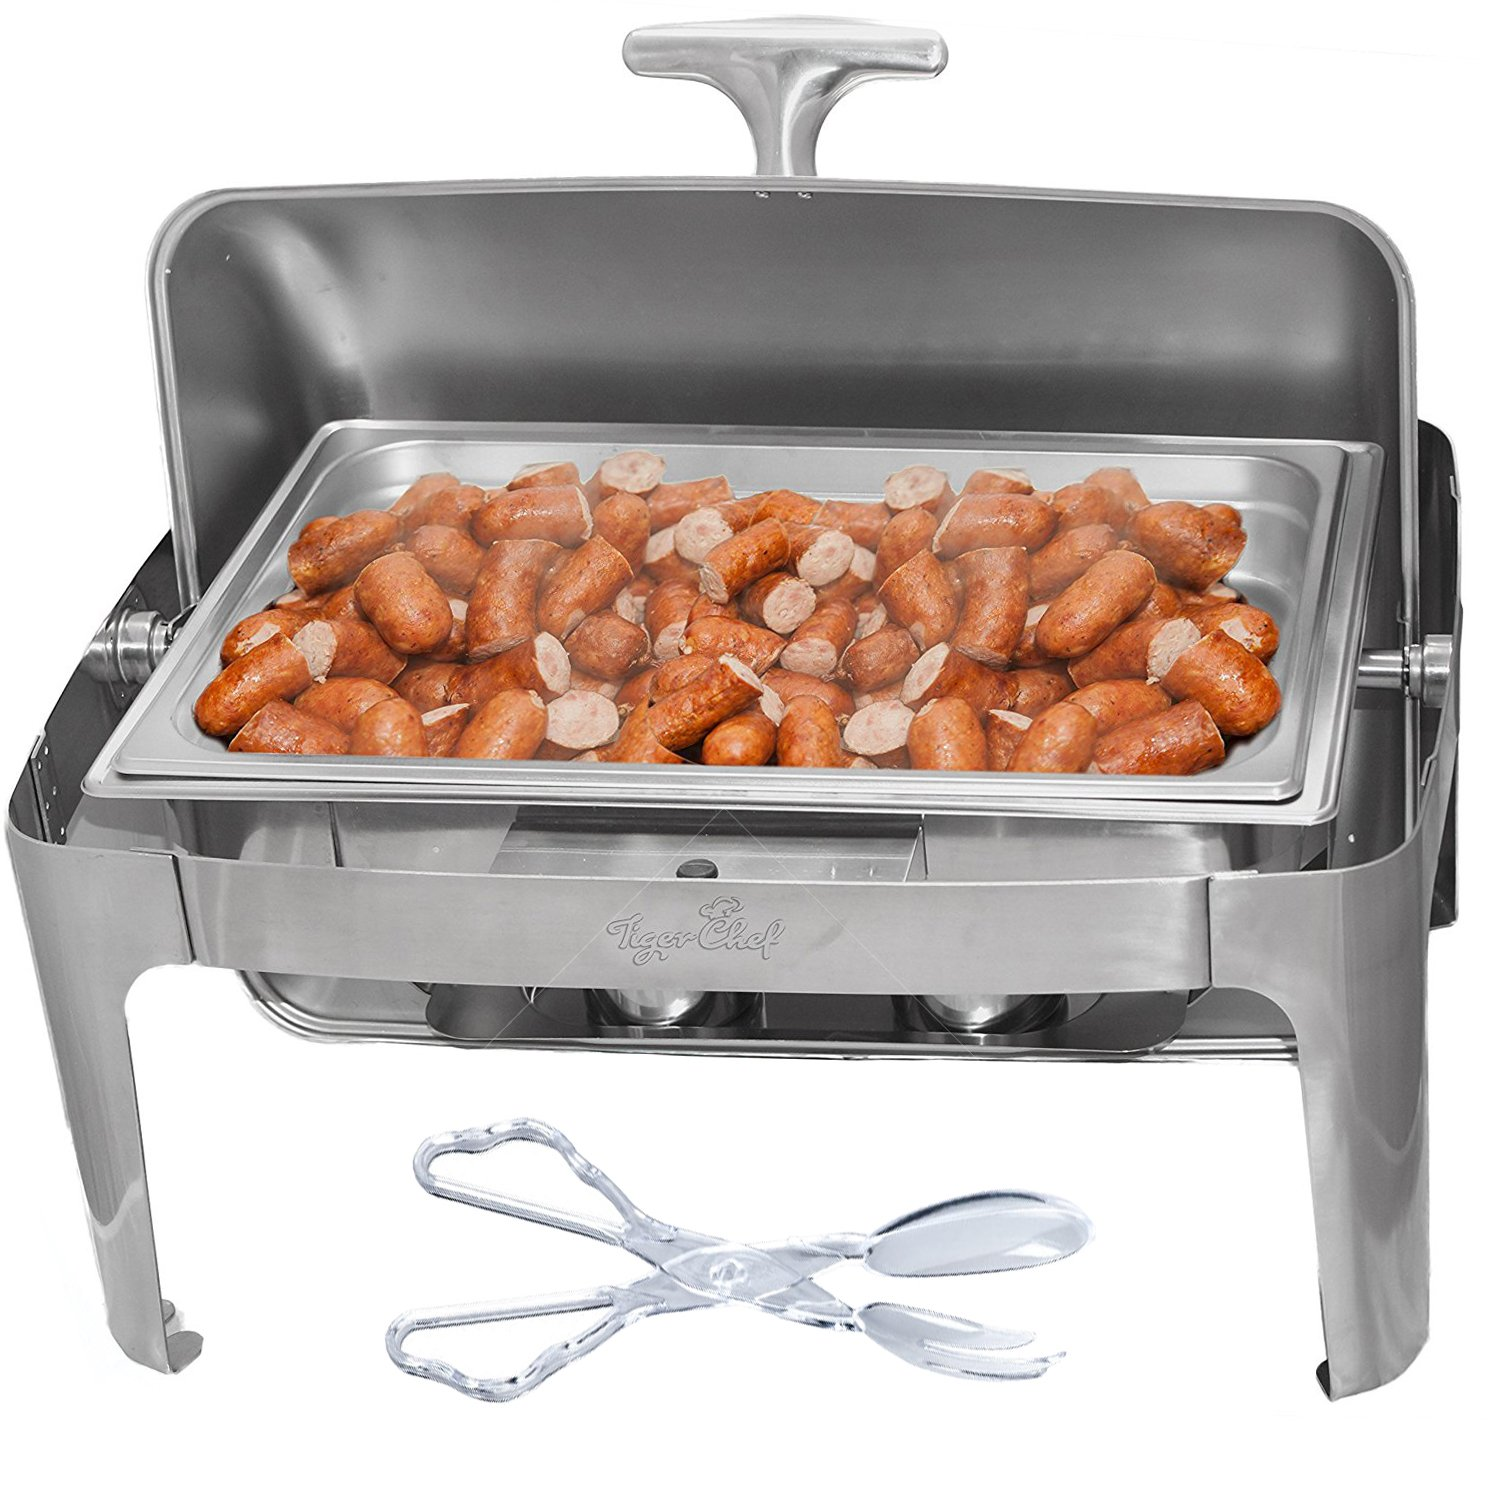 Tiger Chef Stainless Steel Chafer with Roll Top, 8 Quart Chafing Dish Set with Plastic Serving Tong